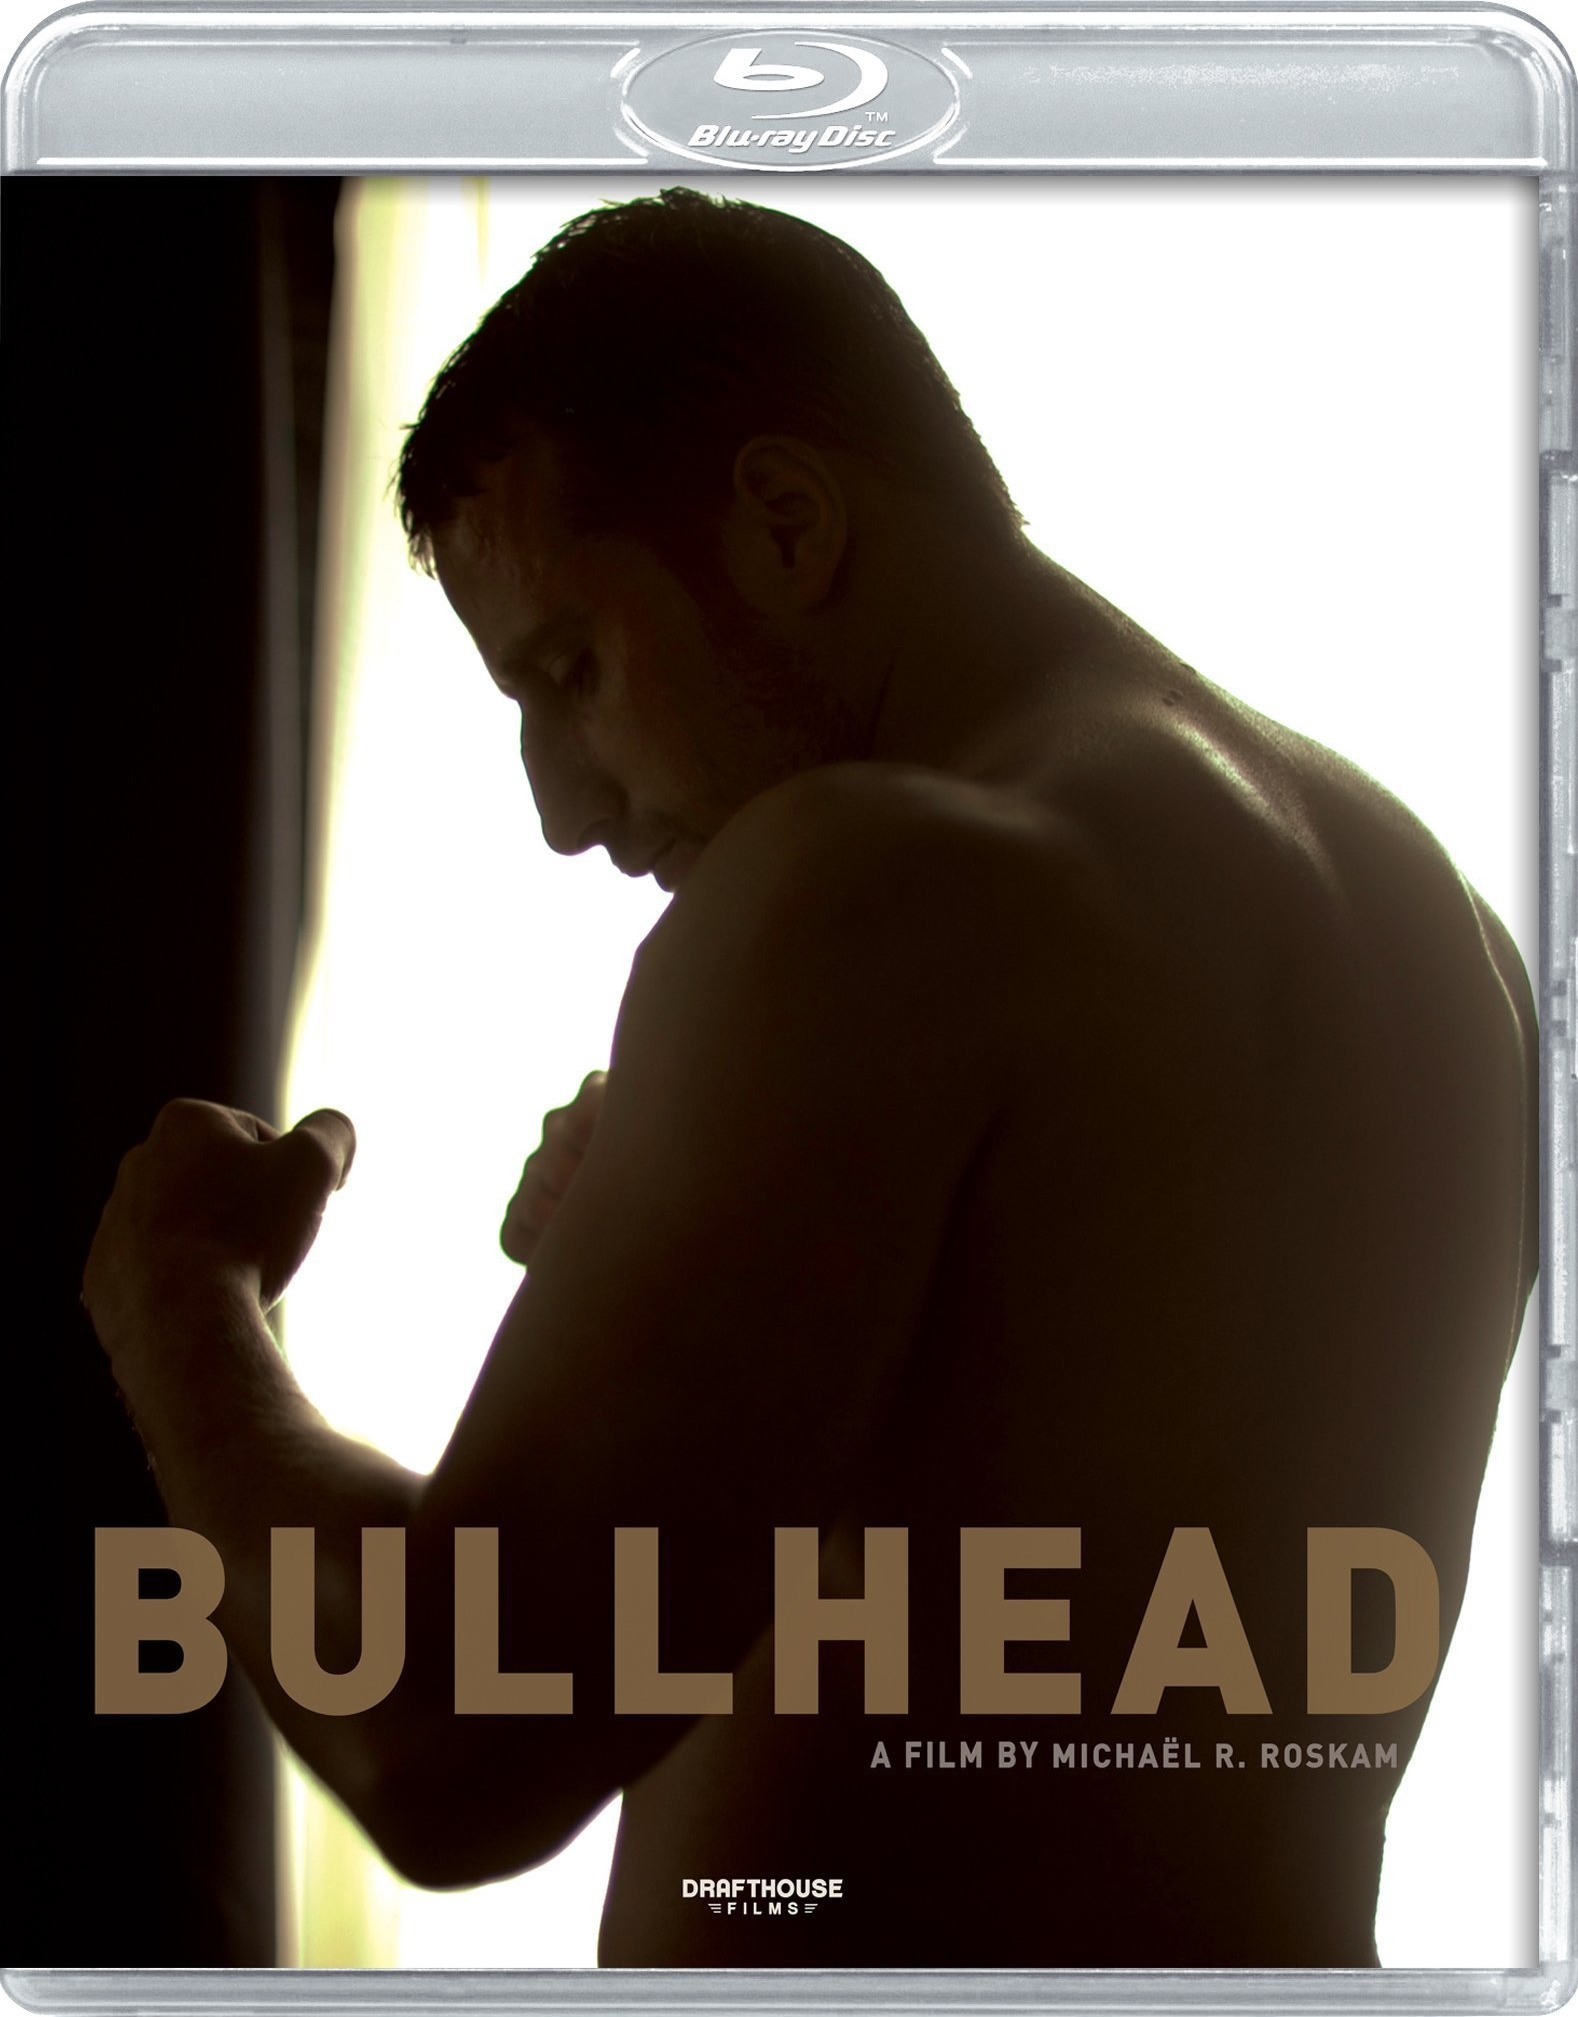 Bullhead Blu-Ray Review